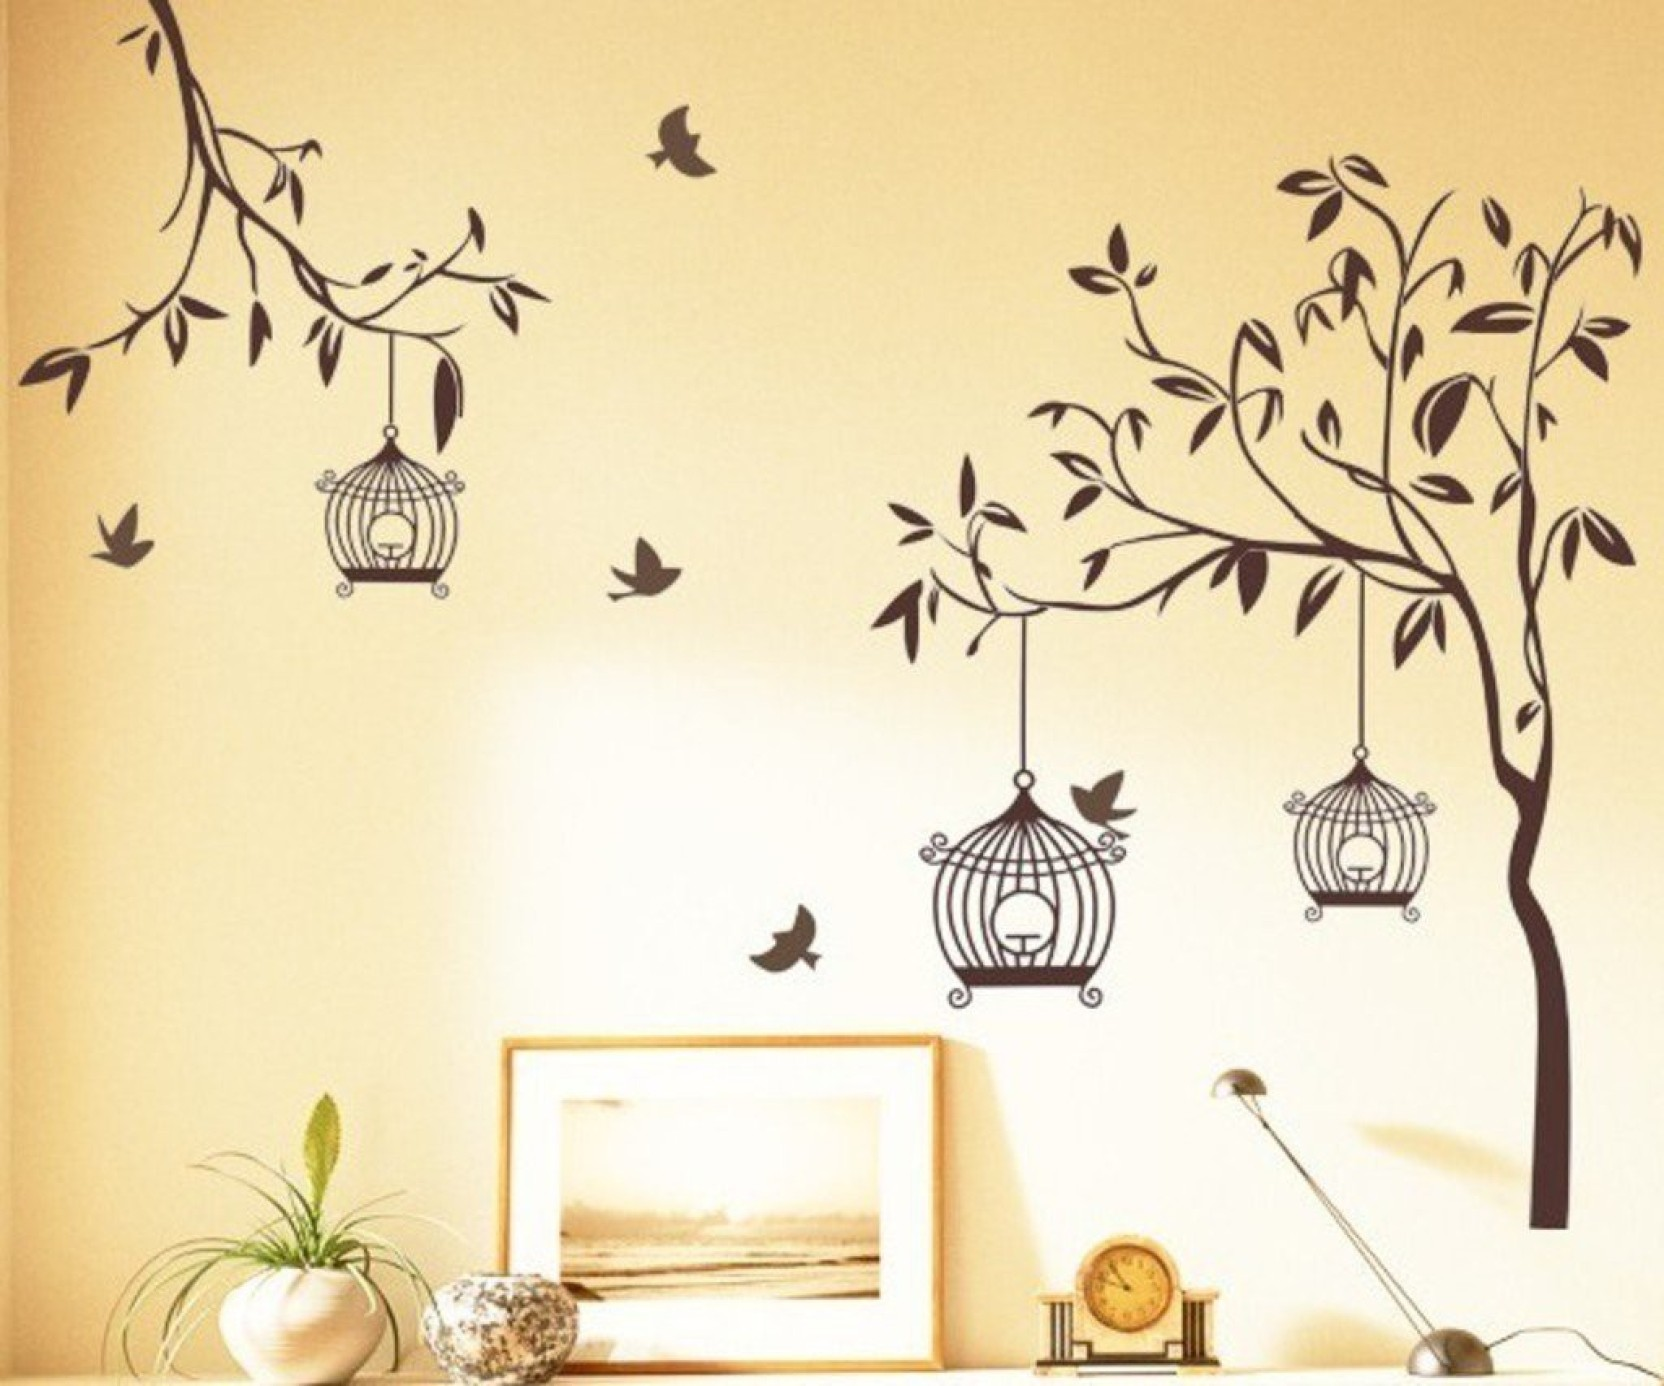 Happy walls Tree Branch With Birds & Bird House TV Decor | Buy ...